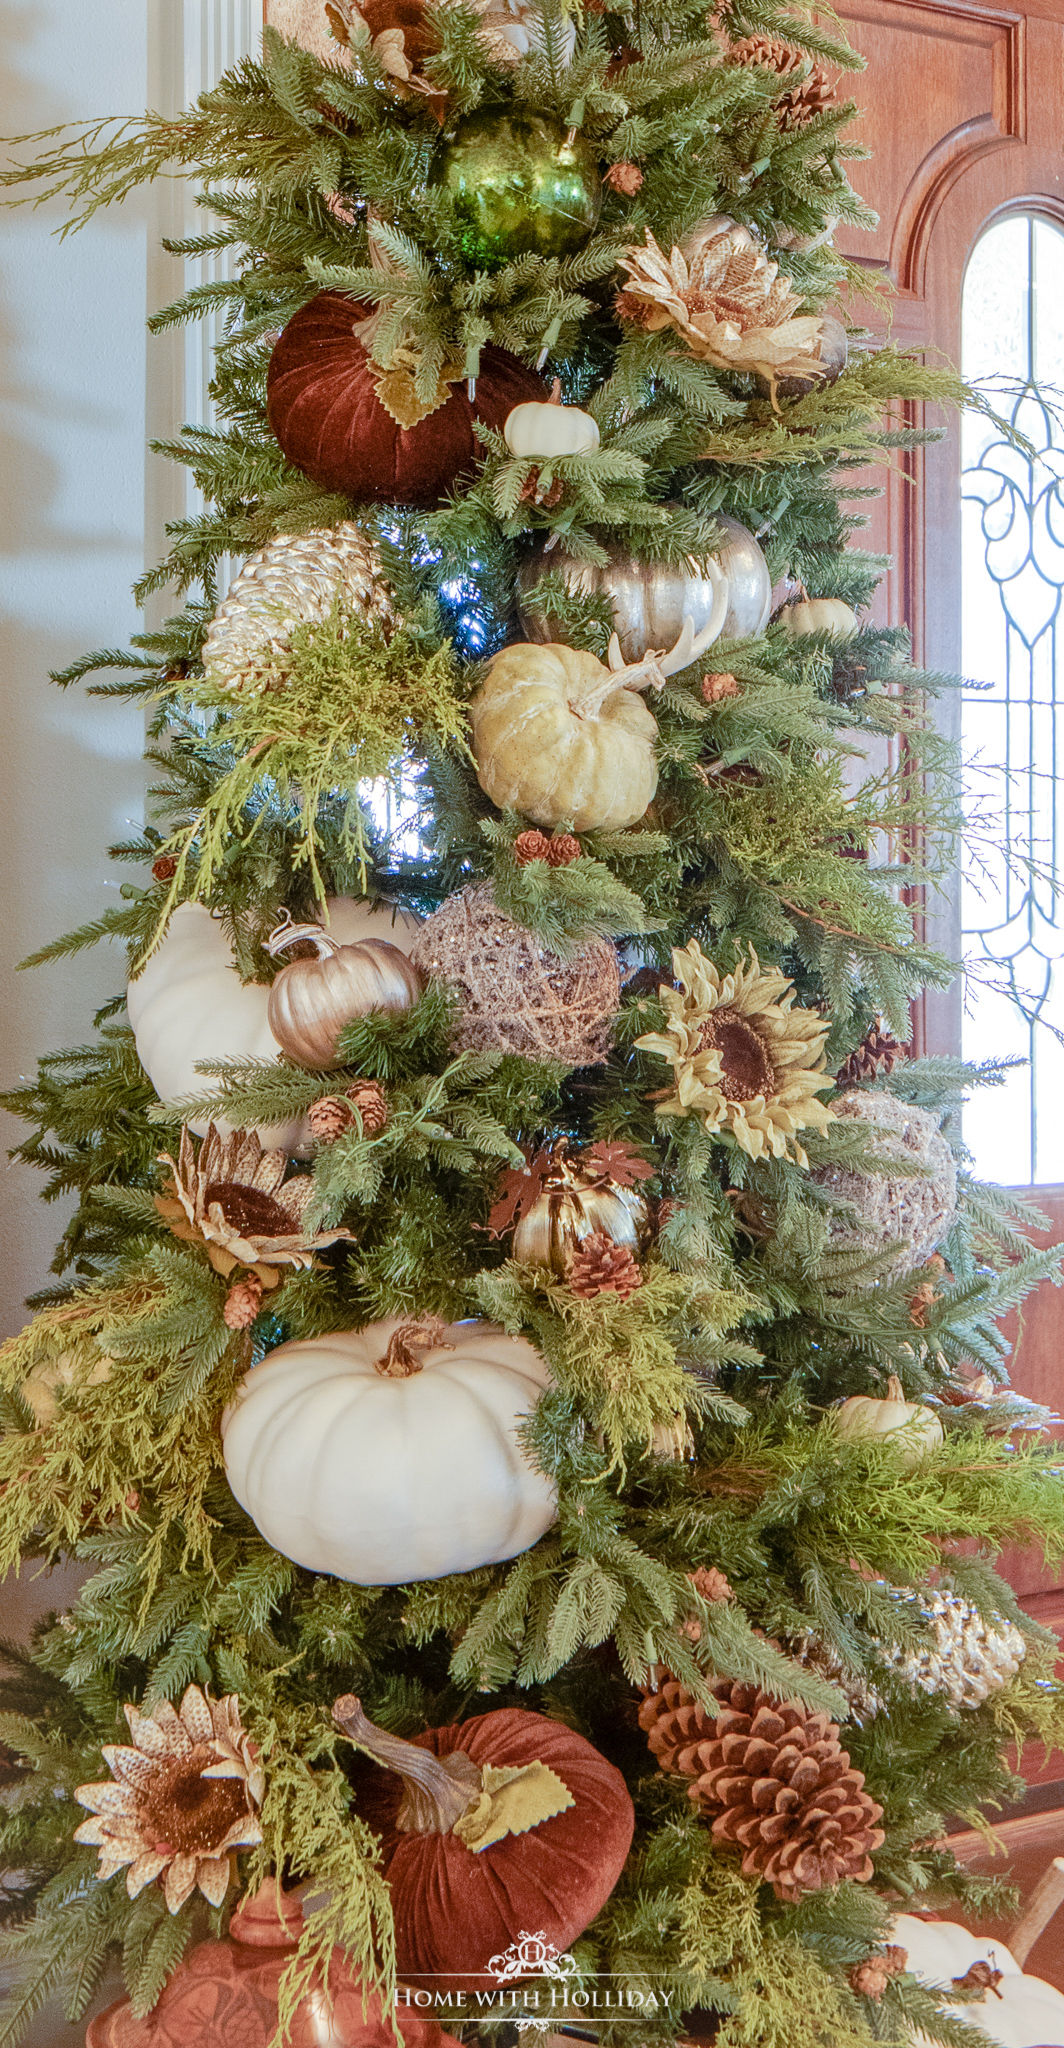 My Simple Thanksgiving Tree with Pumpkins - Home with Holliday